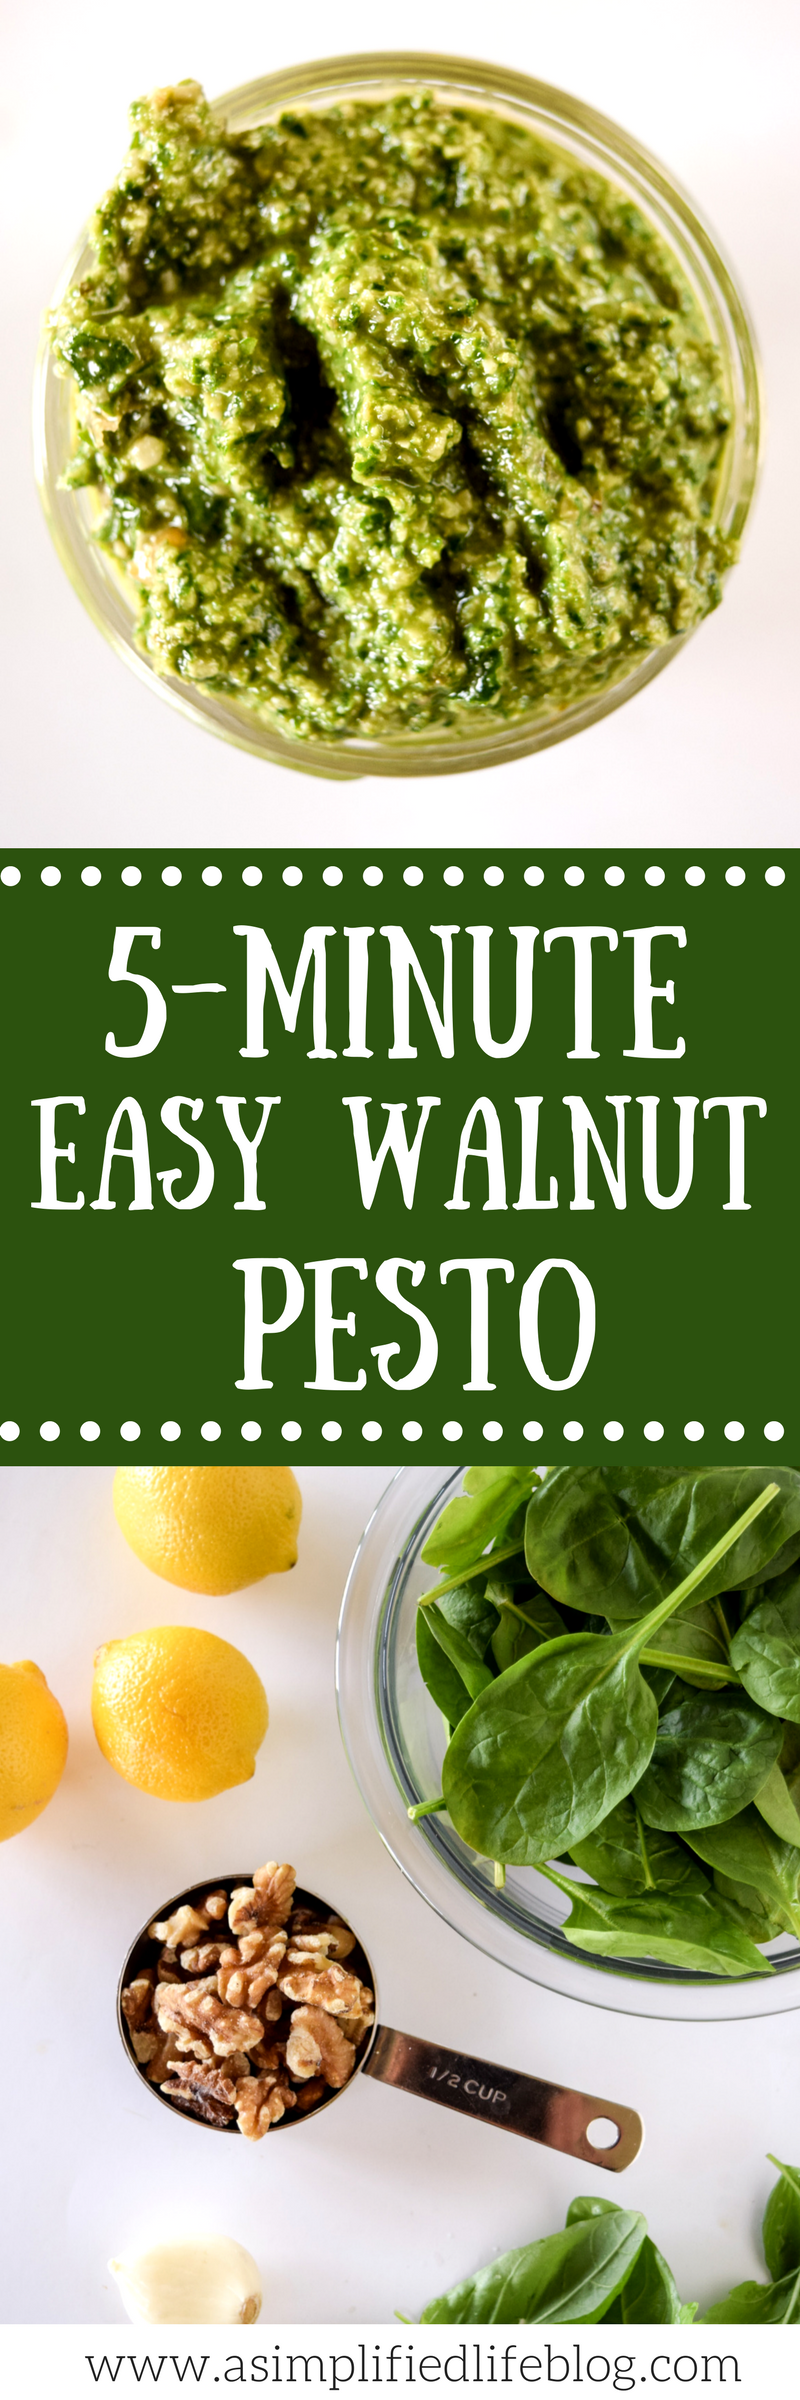 how to make pesto | easy pesto recipe | how to make pesto sauce | easy pesto | walnut pesto | vegan pesto